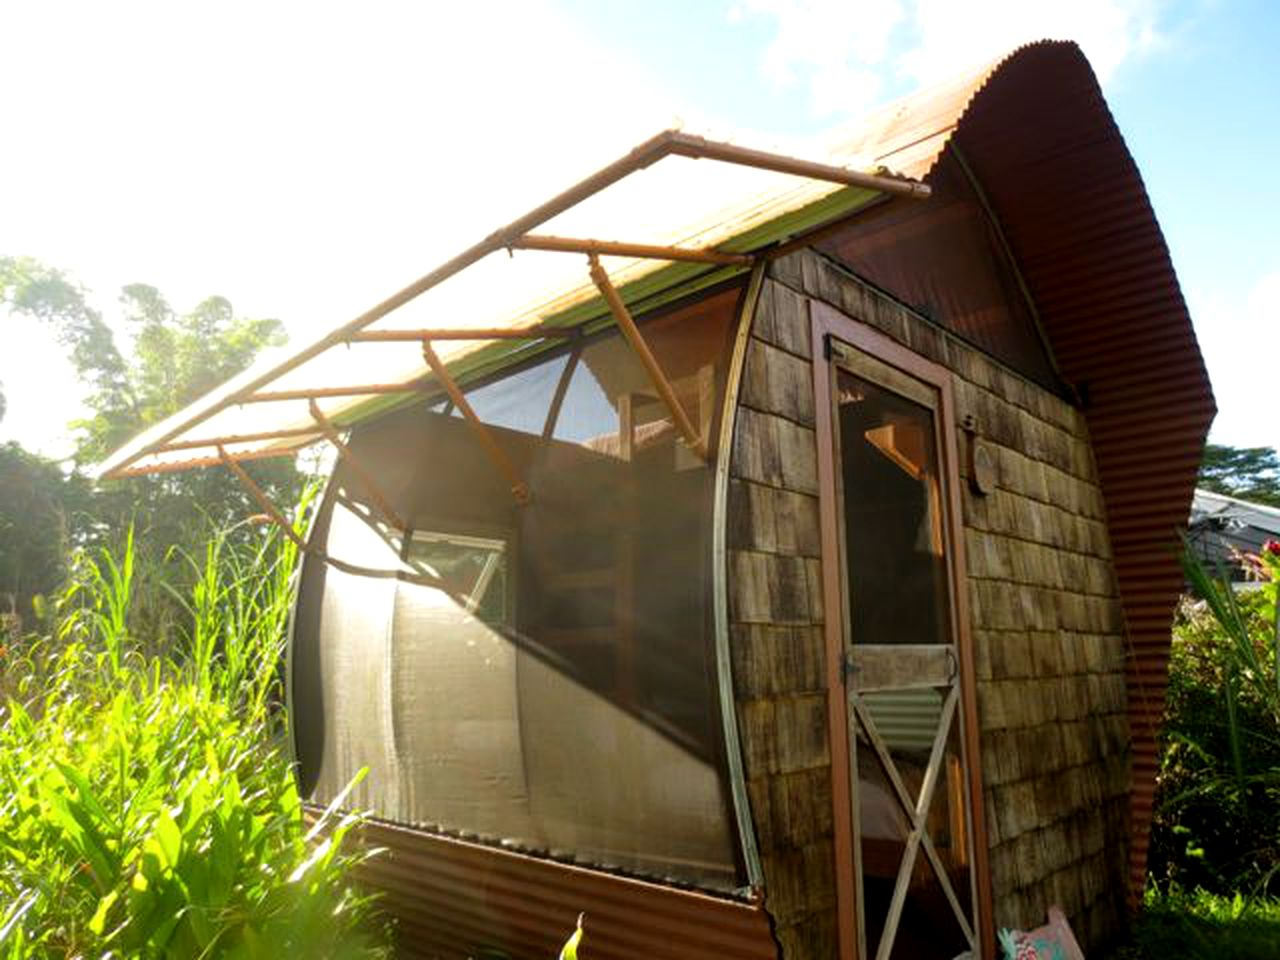 Pahoa accommodations on a sustainable farm in Hawaii.